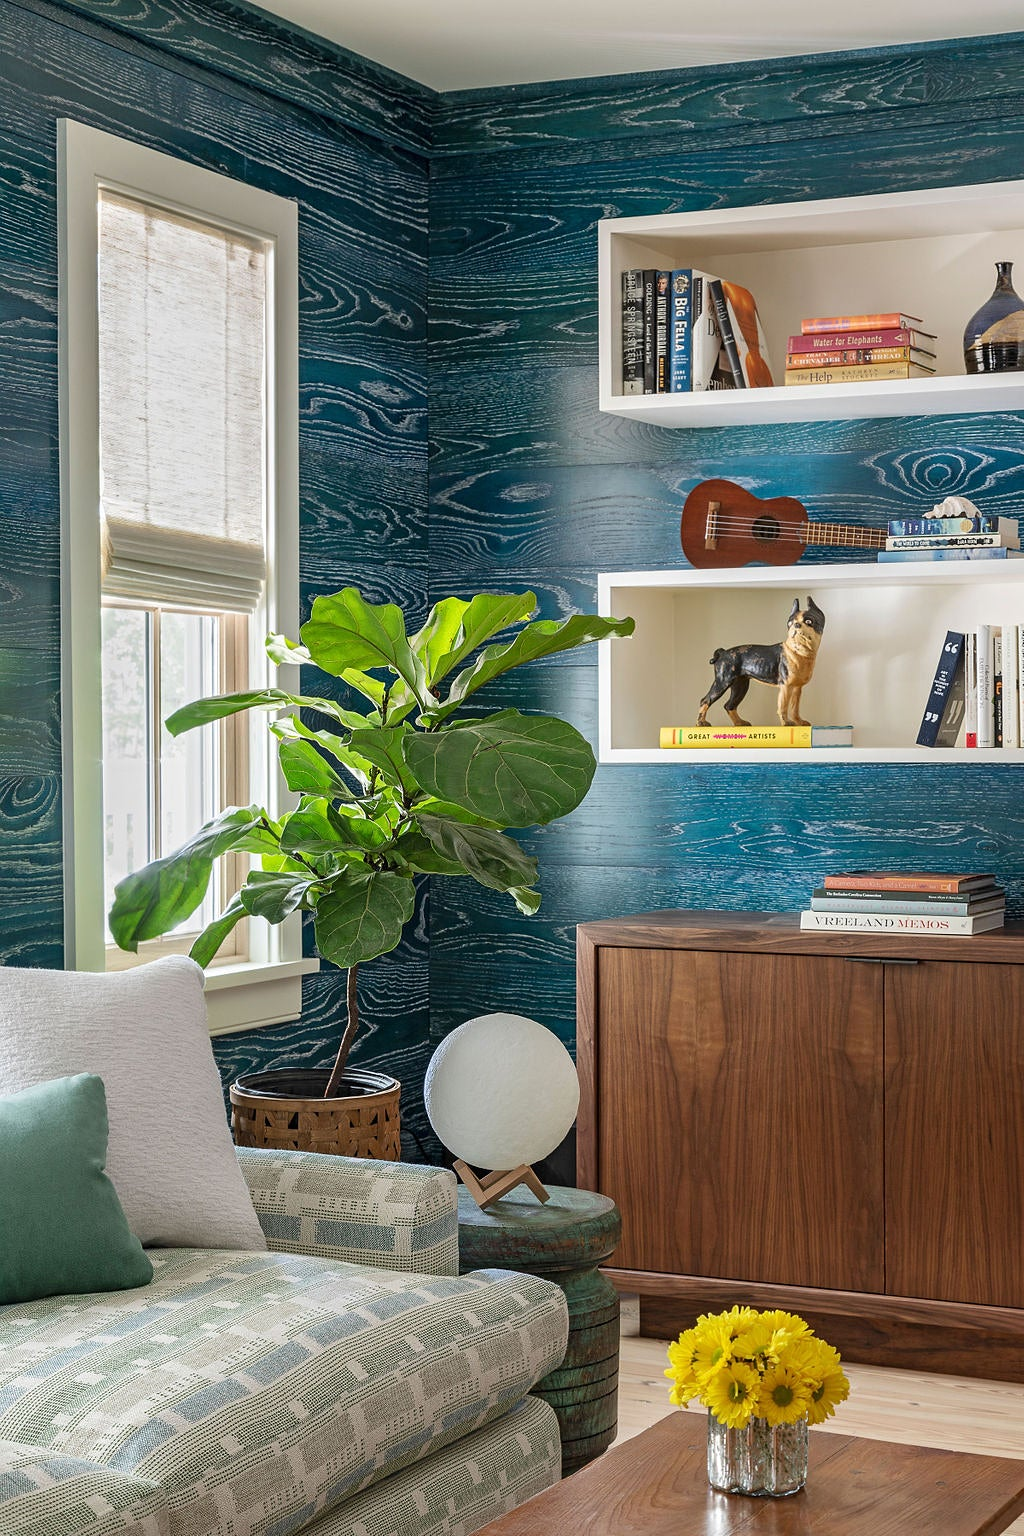 00-FEATURE-Blue-Stained-Walls-bright-idea-domino